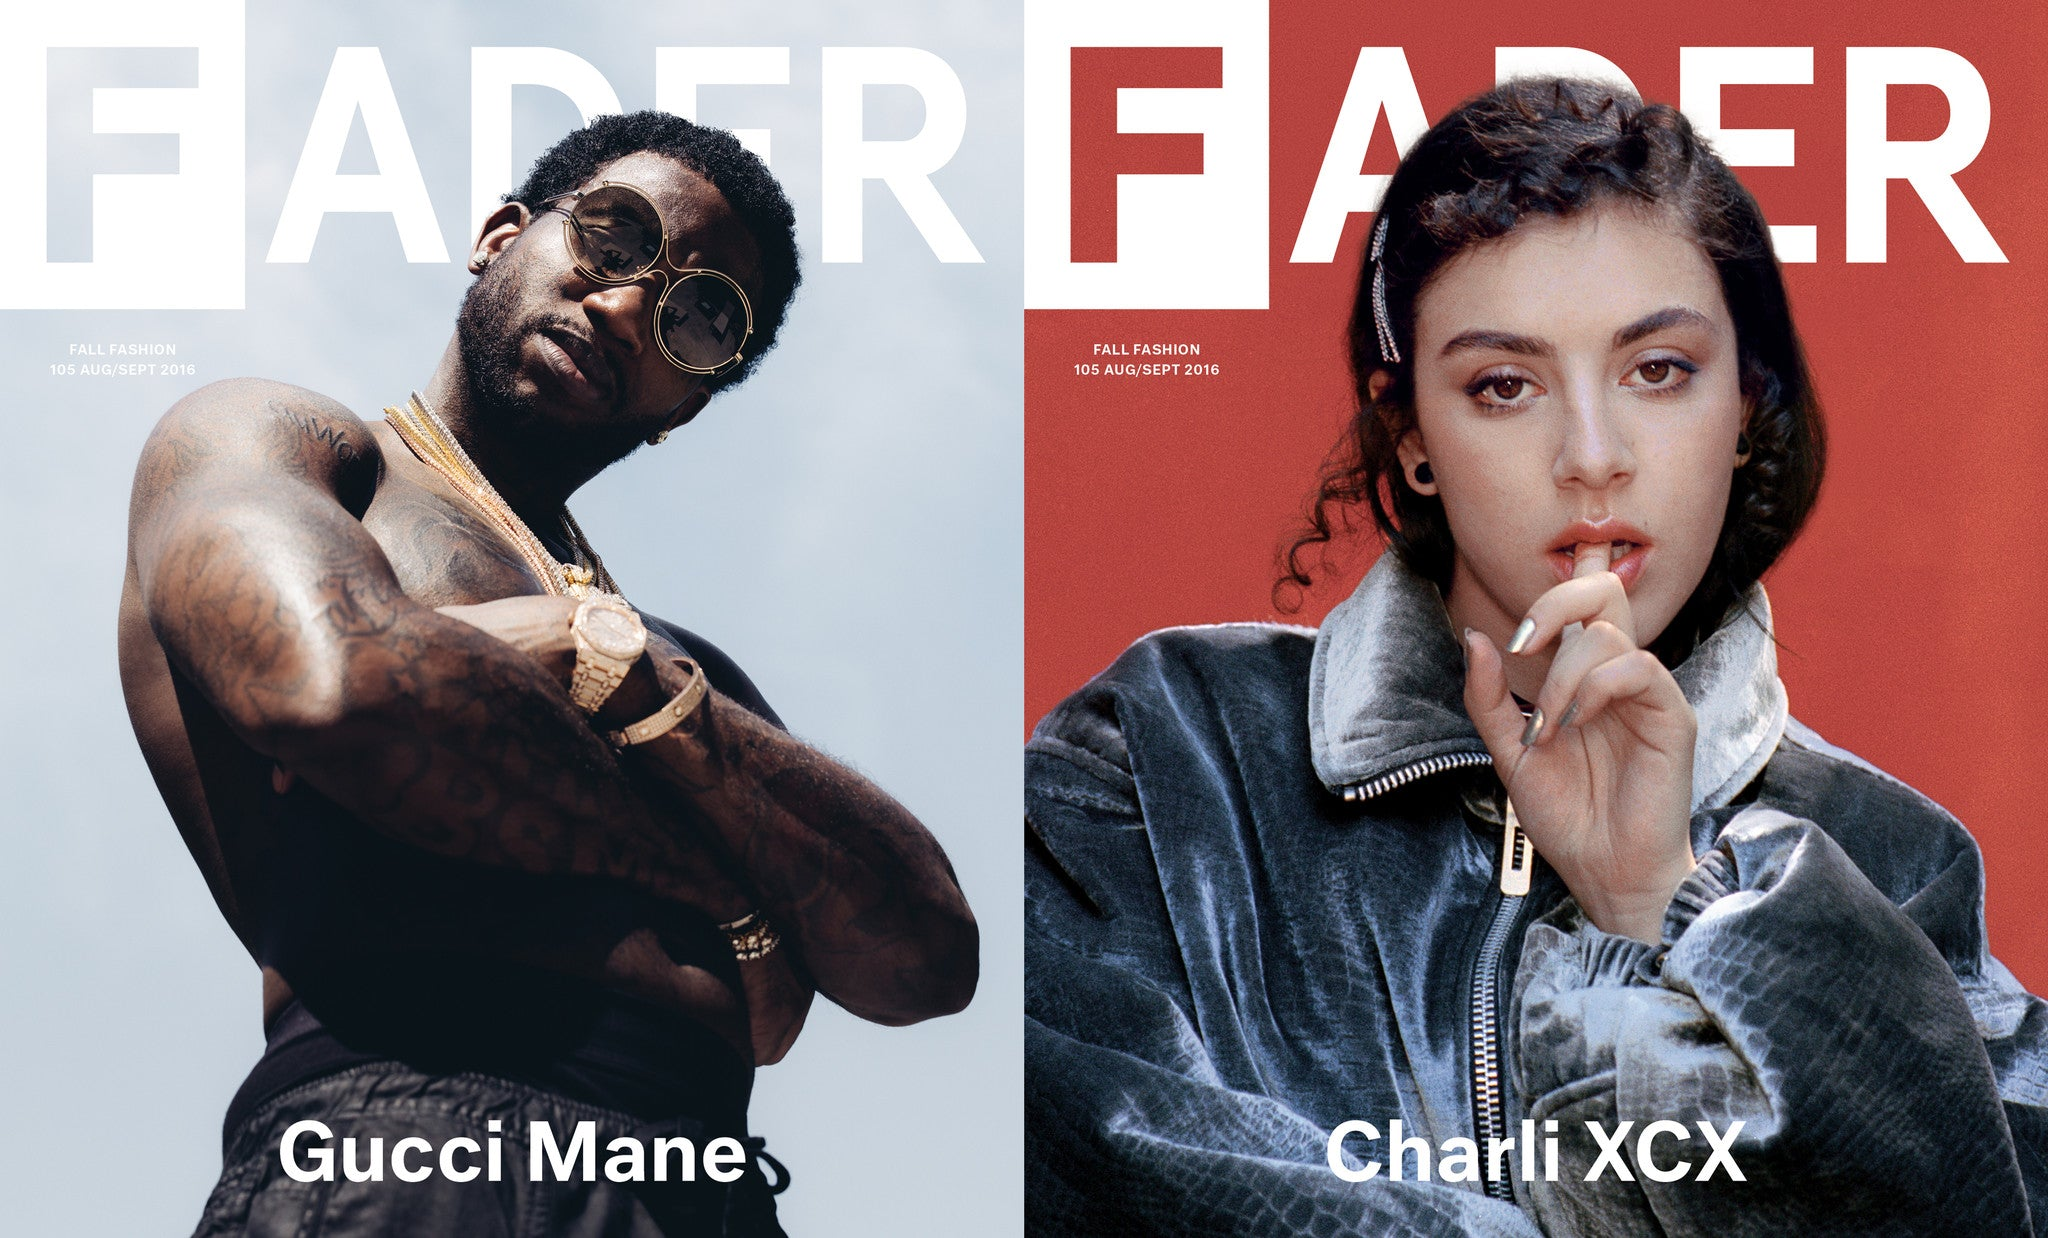 Issue 105: Gucci Mane / Charli XCX - The FADER